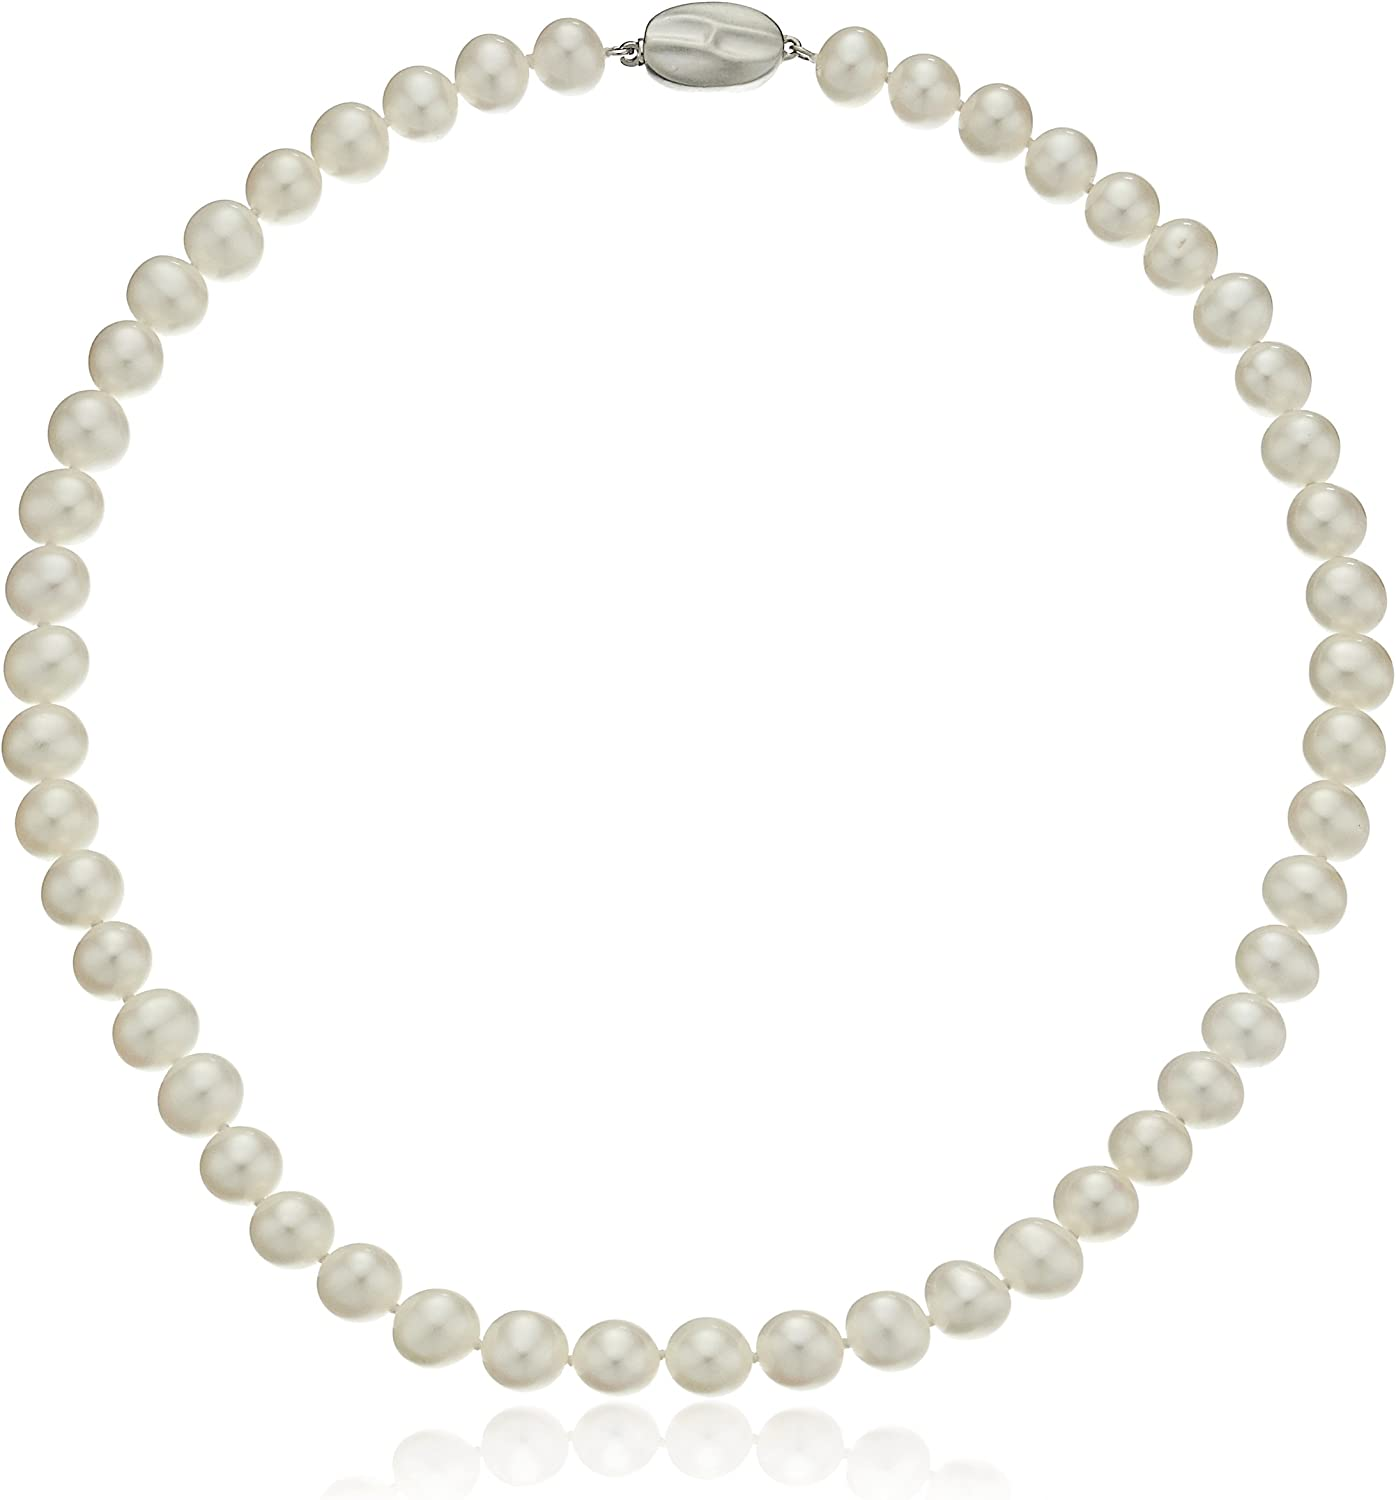 New 8-9mm White Freshwater Cultured Round Pearl necklace 65/'/'